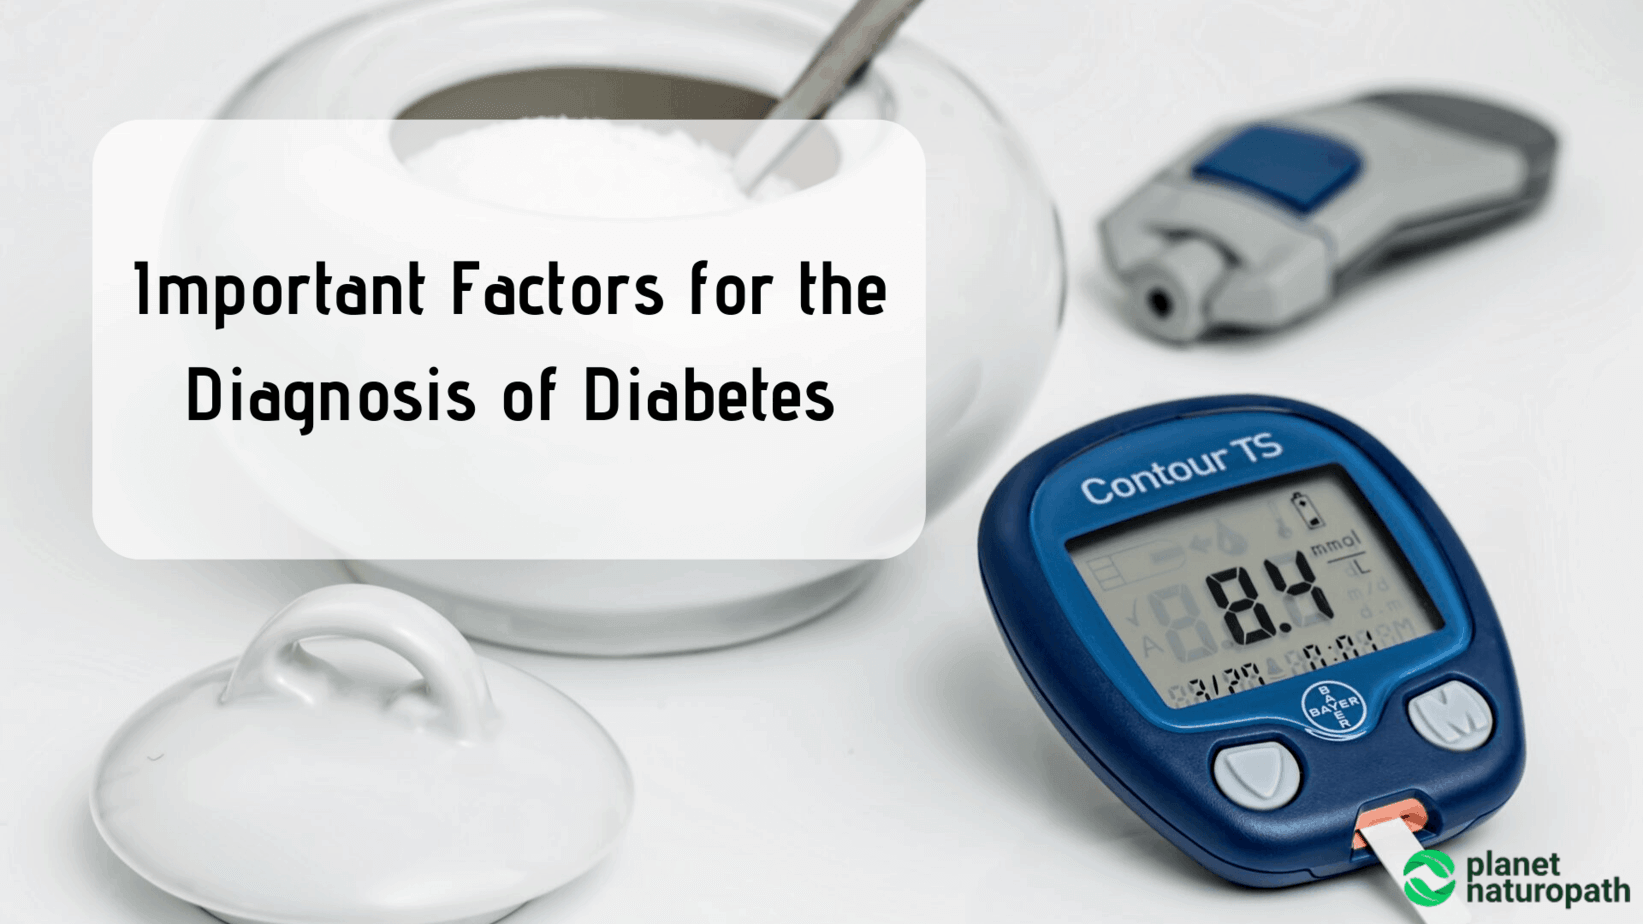 Important-Factors-for-the-Diagnosis-of-Diabetes